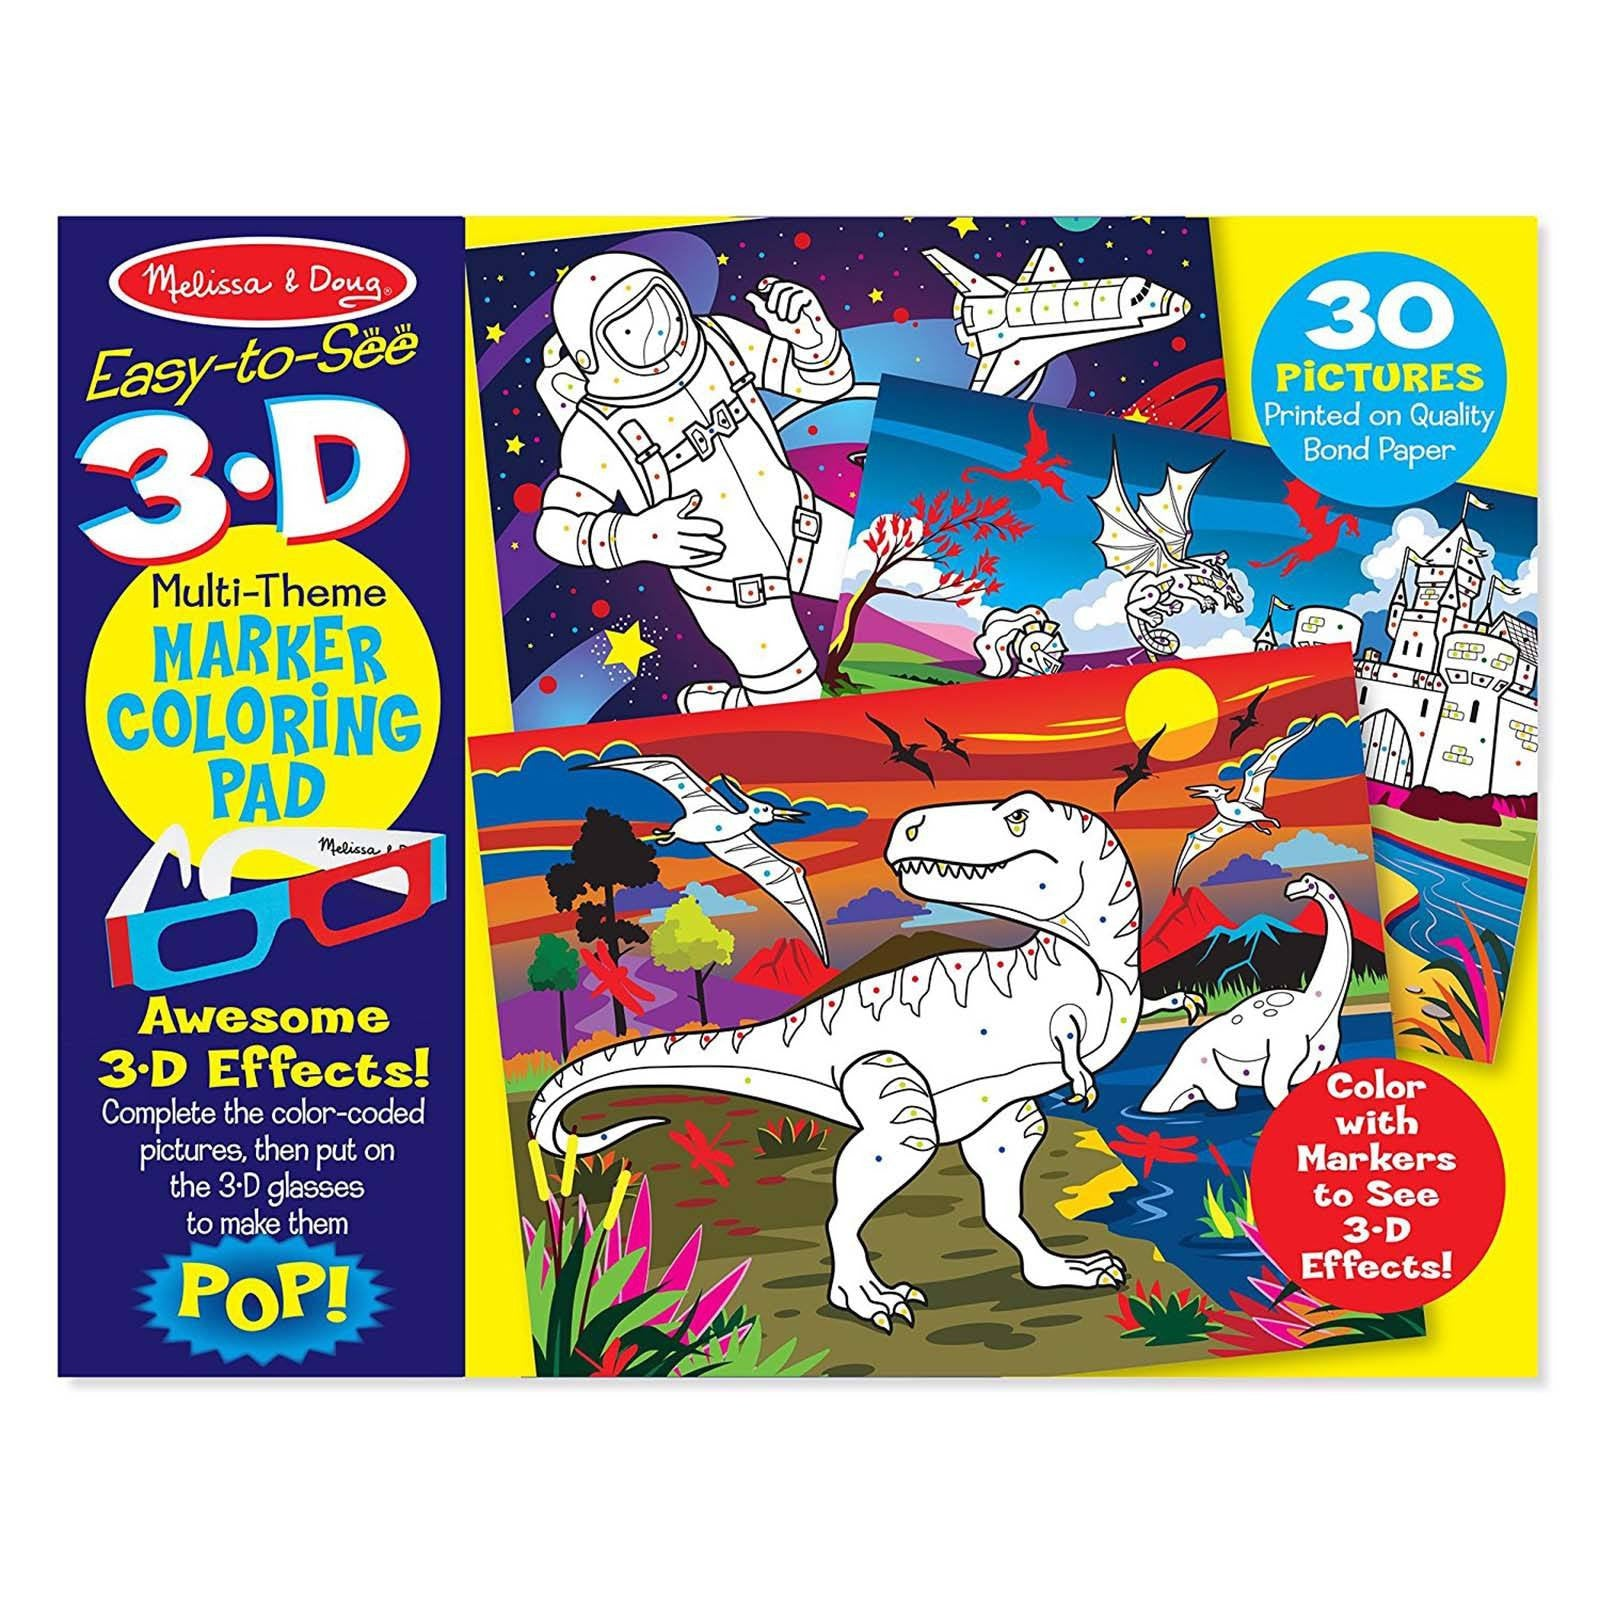 melissa and doug blue multi-theme 3d marker coloring pad | radar